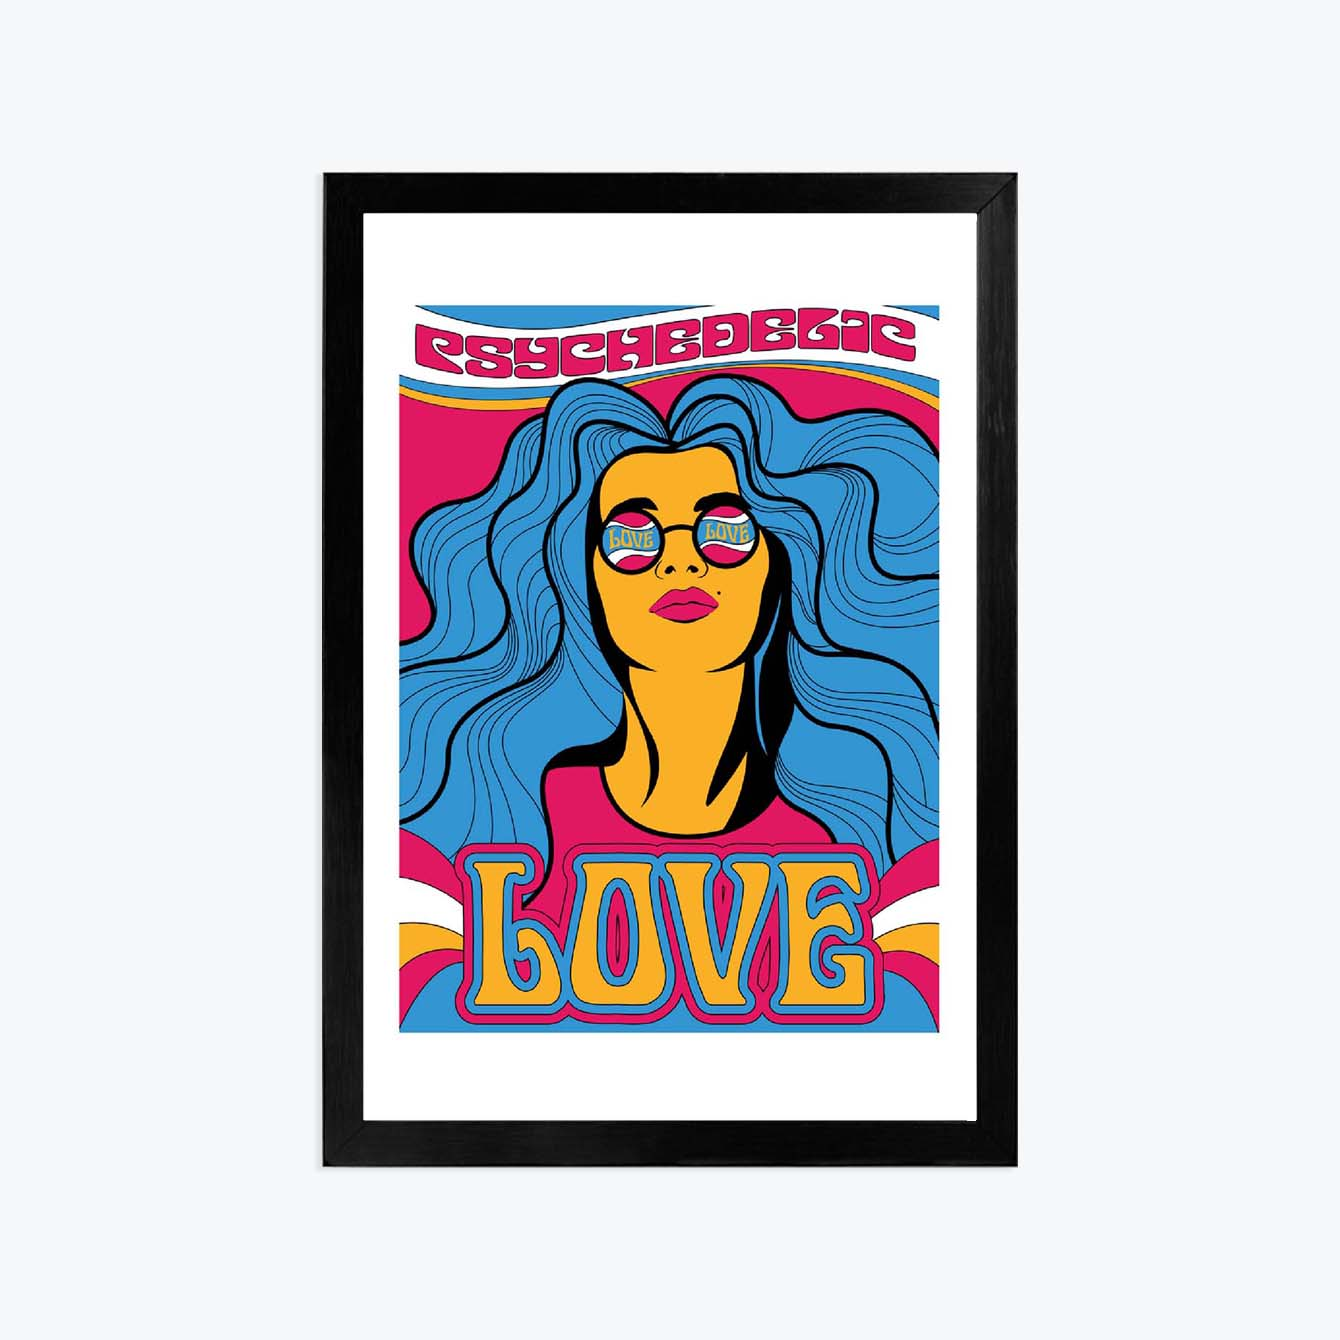 Love Pop Art Glass Framed Posters & Artprints